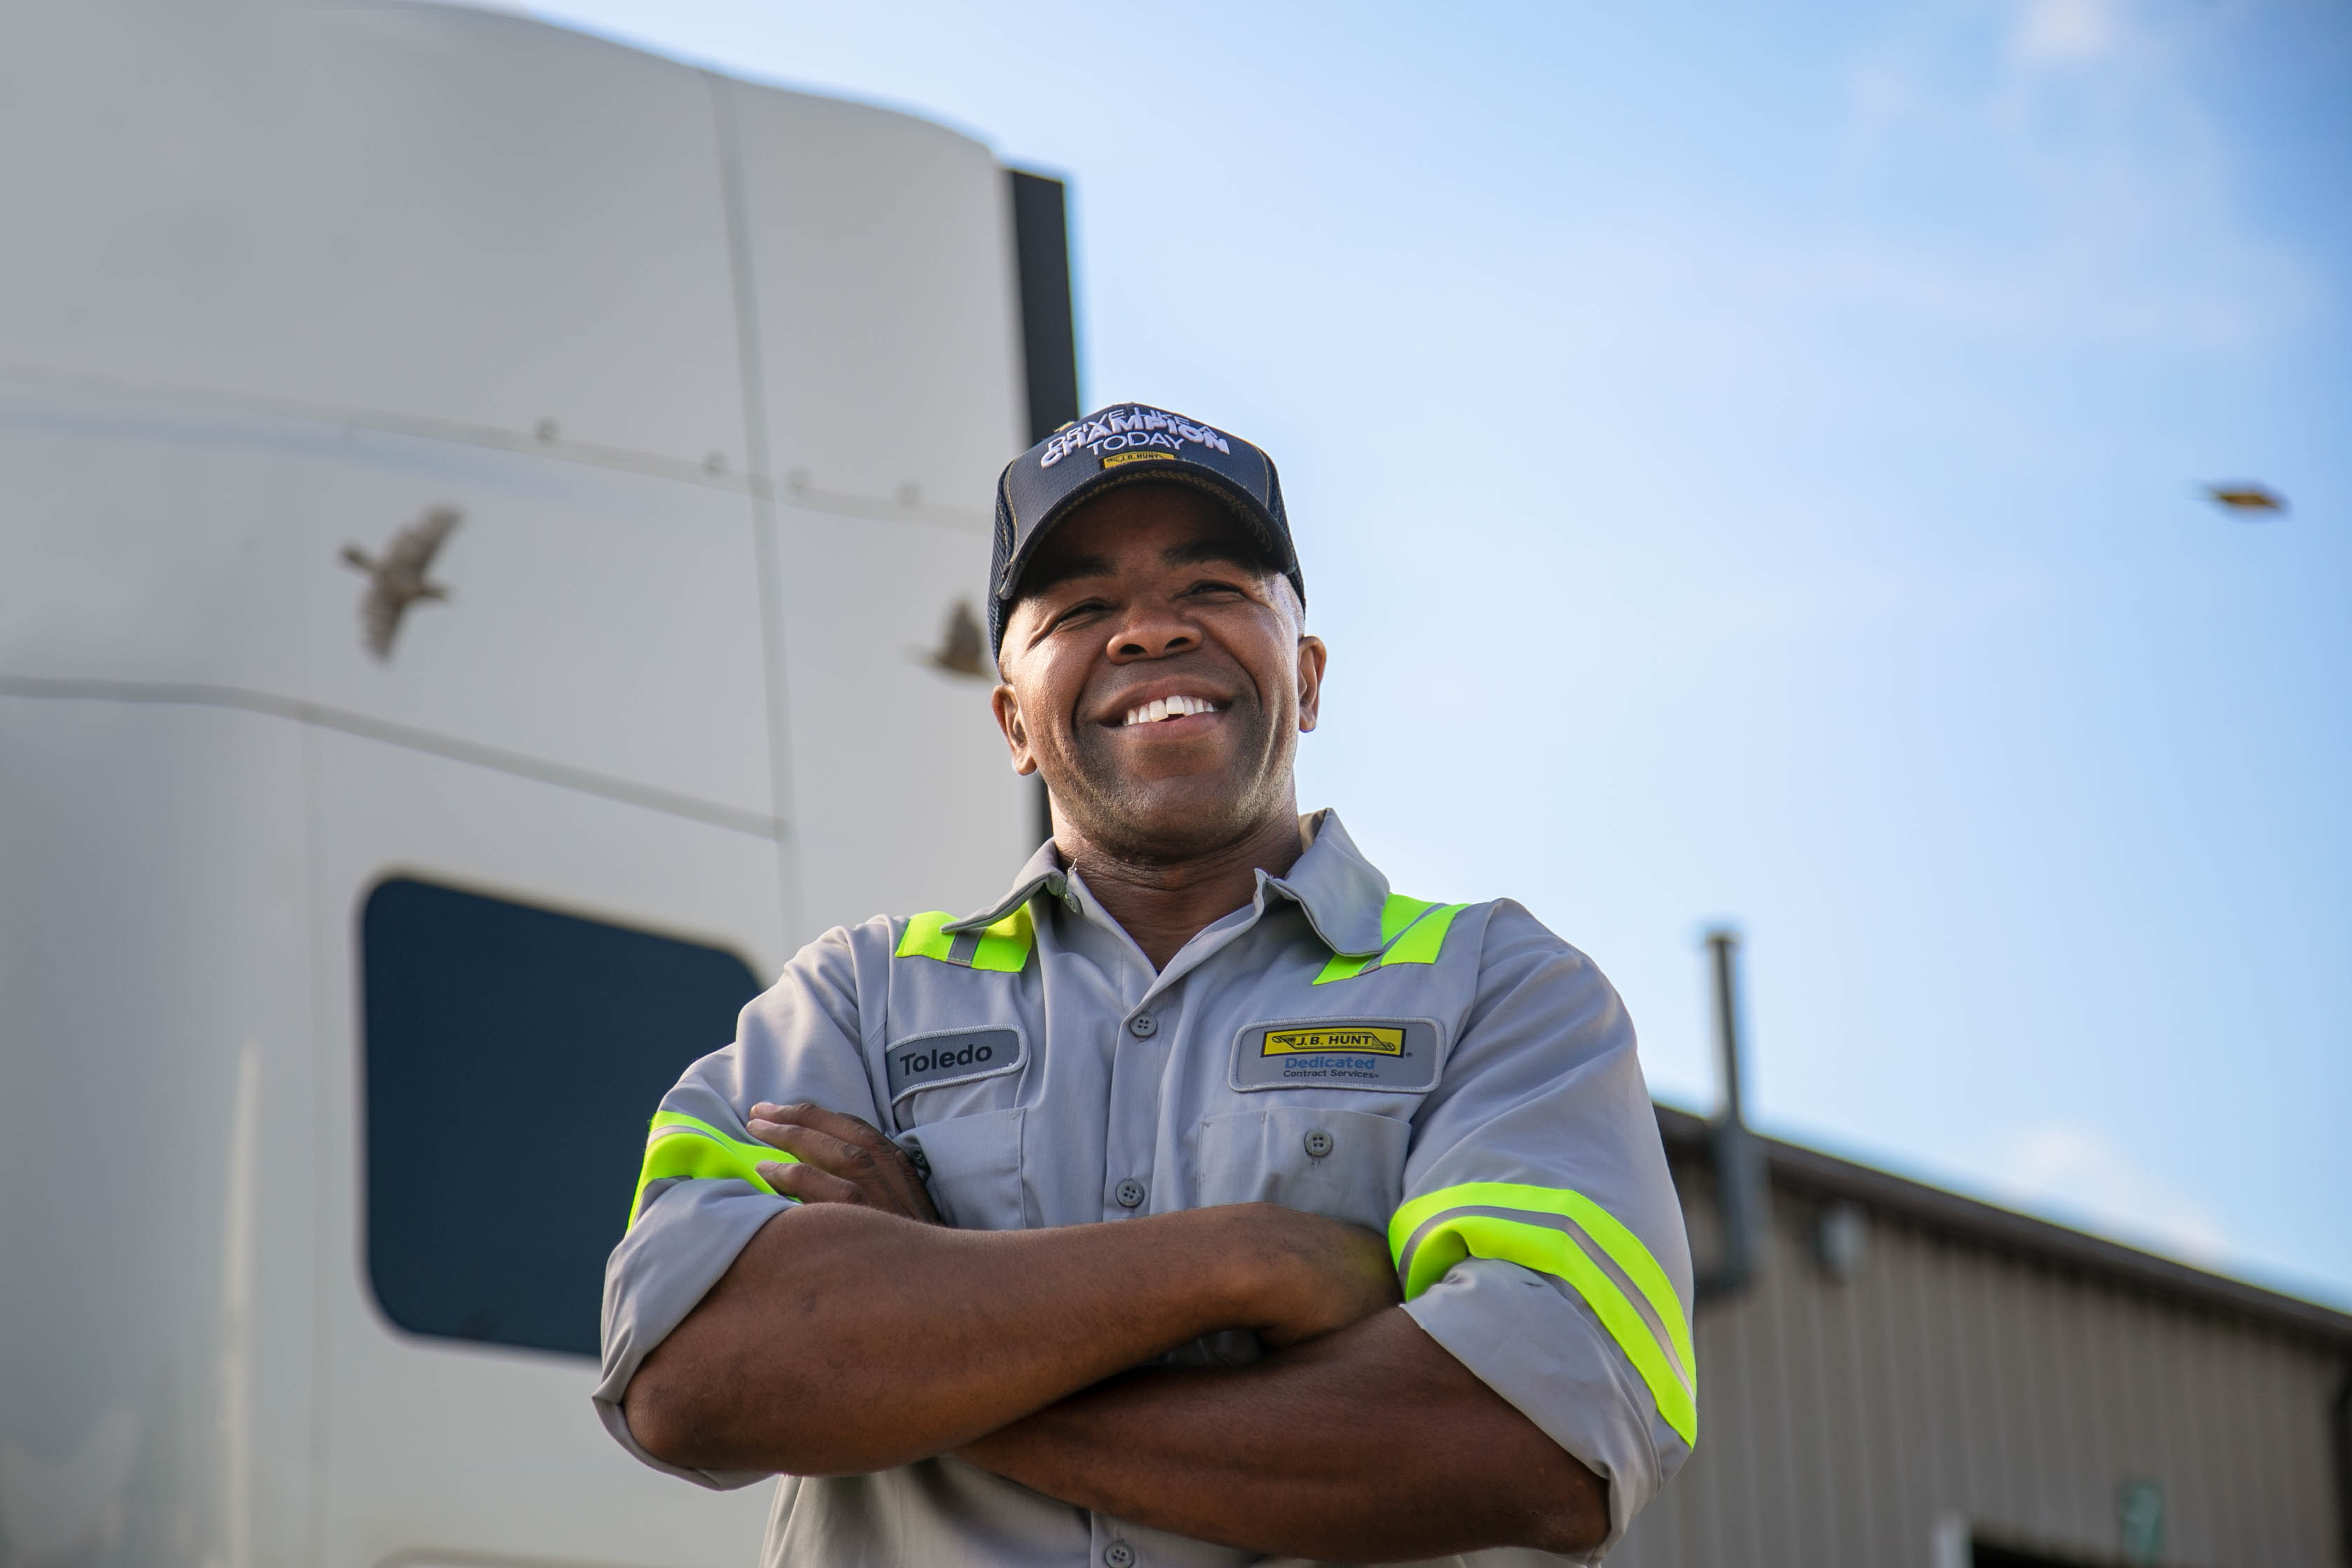 J.B. Hunt driver Toledo smiling with his arms folded in front of a J.B. Hunt sleeper truck.